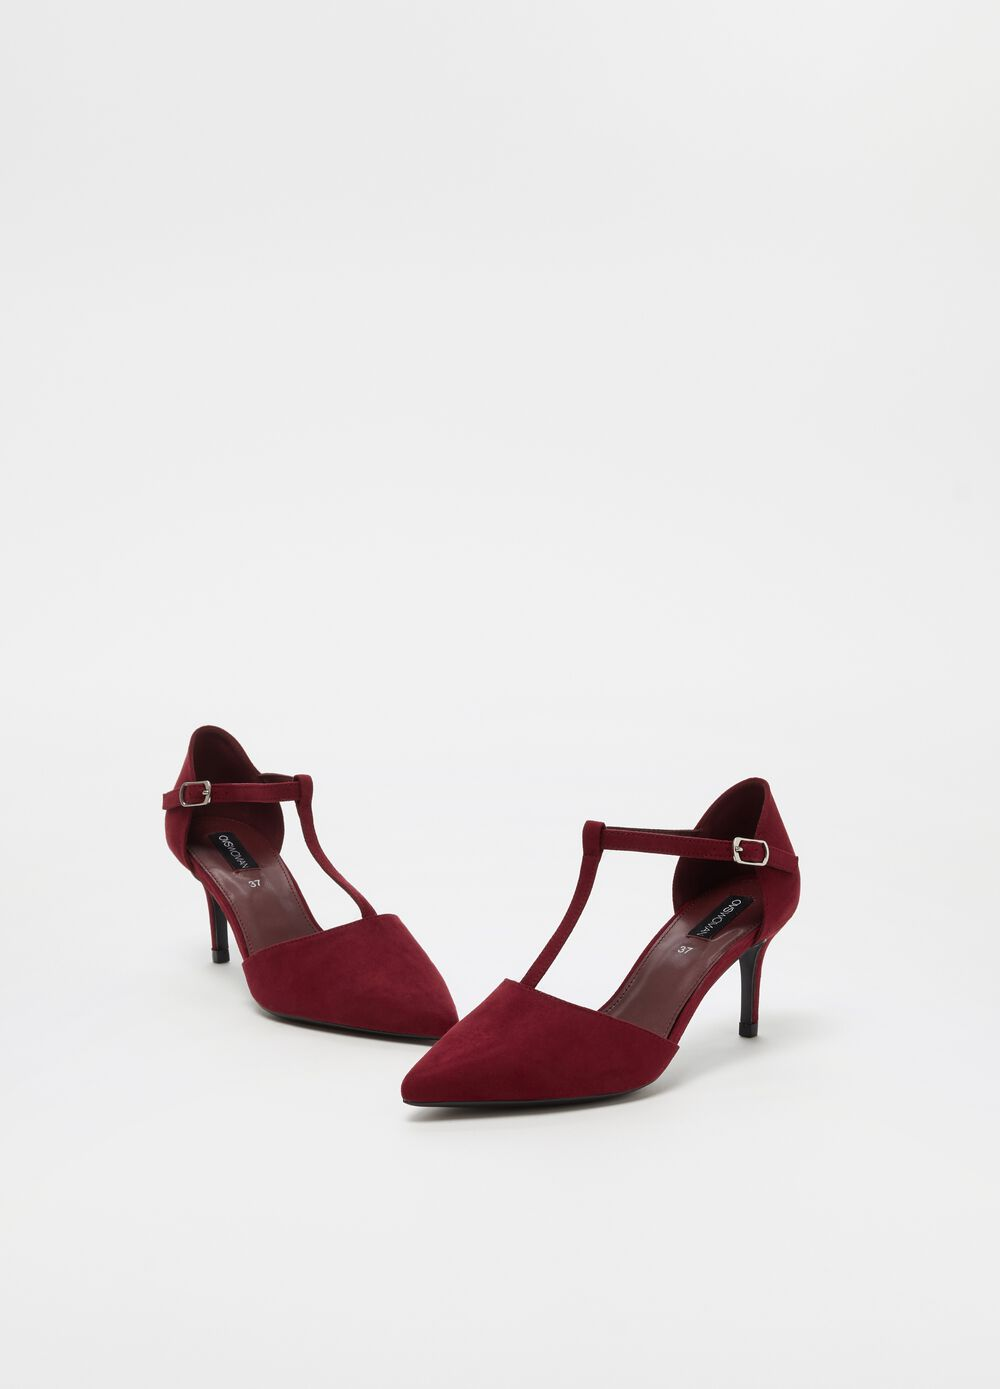 Pointed open-toe court shoe with stiletto heel